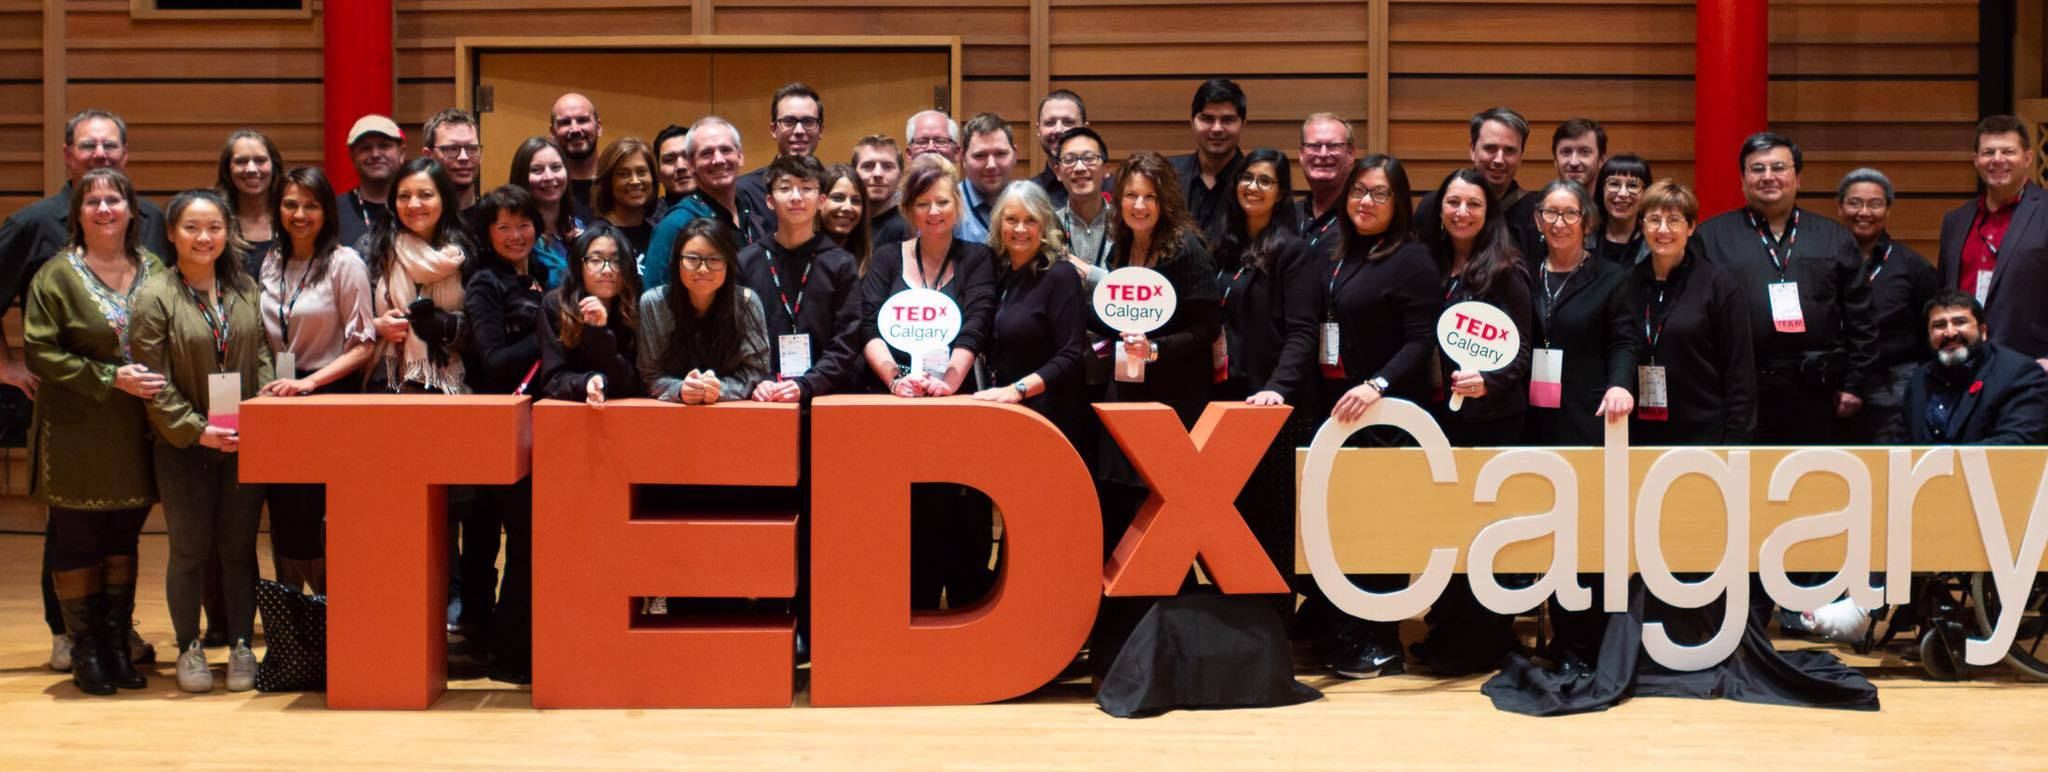 TEDxCalgary Volunteers